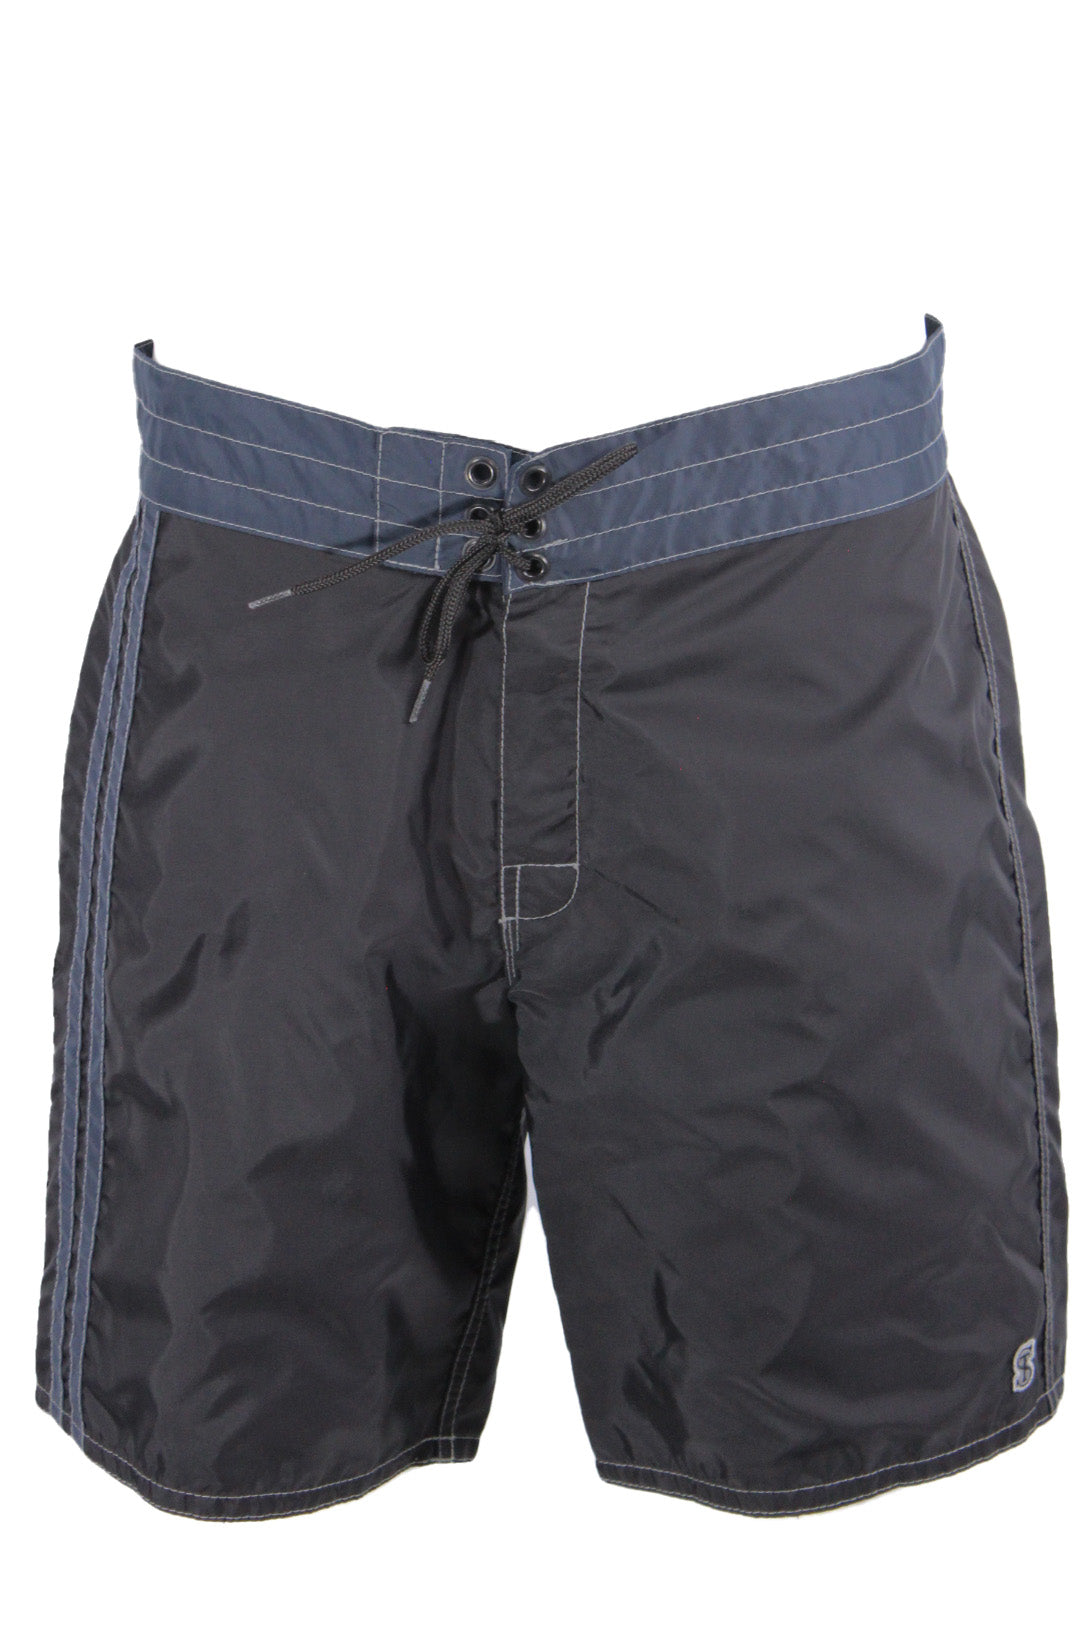 birdwell for todd snyder black/navy nylon boardshorts. features logo tag at back of waist, above left leg, and accent stripes at right leg. button flap rear pocket with key loop, button flay with drawstring closure.